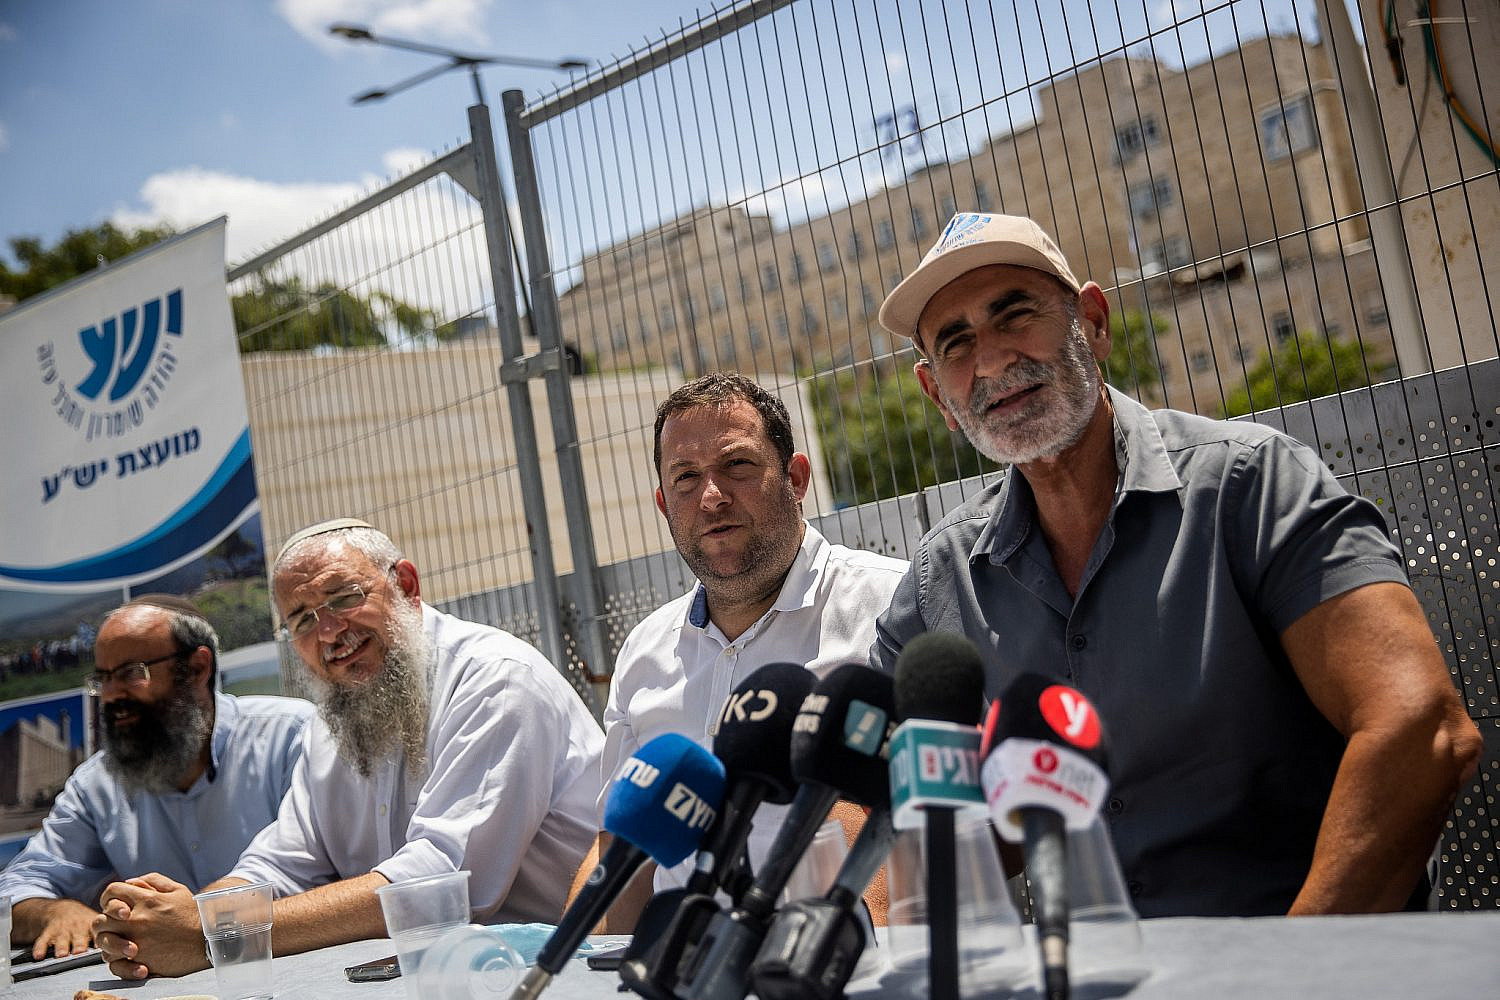 Judea, Samaria, and the Jordan Valley heads of councils attend a press conference of the Yesha Council outside the Prime Minister's Office in Jerusalem, August 12, 2021. (Yonatan Sindel/Flash90)